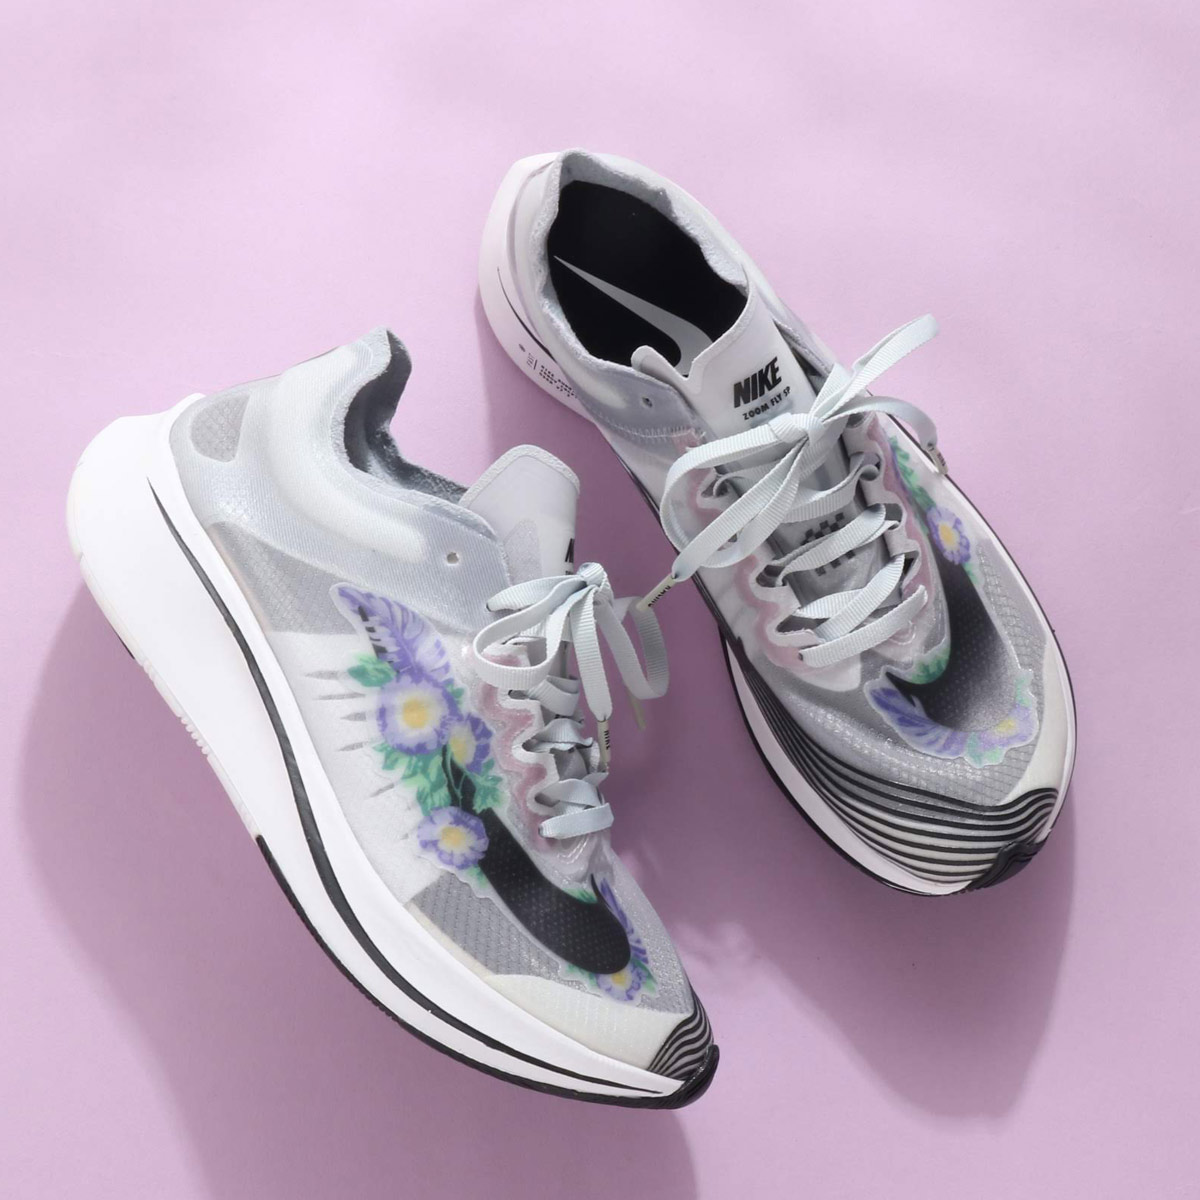 NIKE WMNS ZOOM FLY SP GPX RS (ナイキ ウィメンズ ズーム フライ SP GPX RS)PURE PLATINUM/BLACK-WHITE【レディース スニーカー】18HO-I